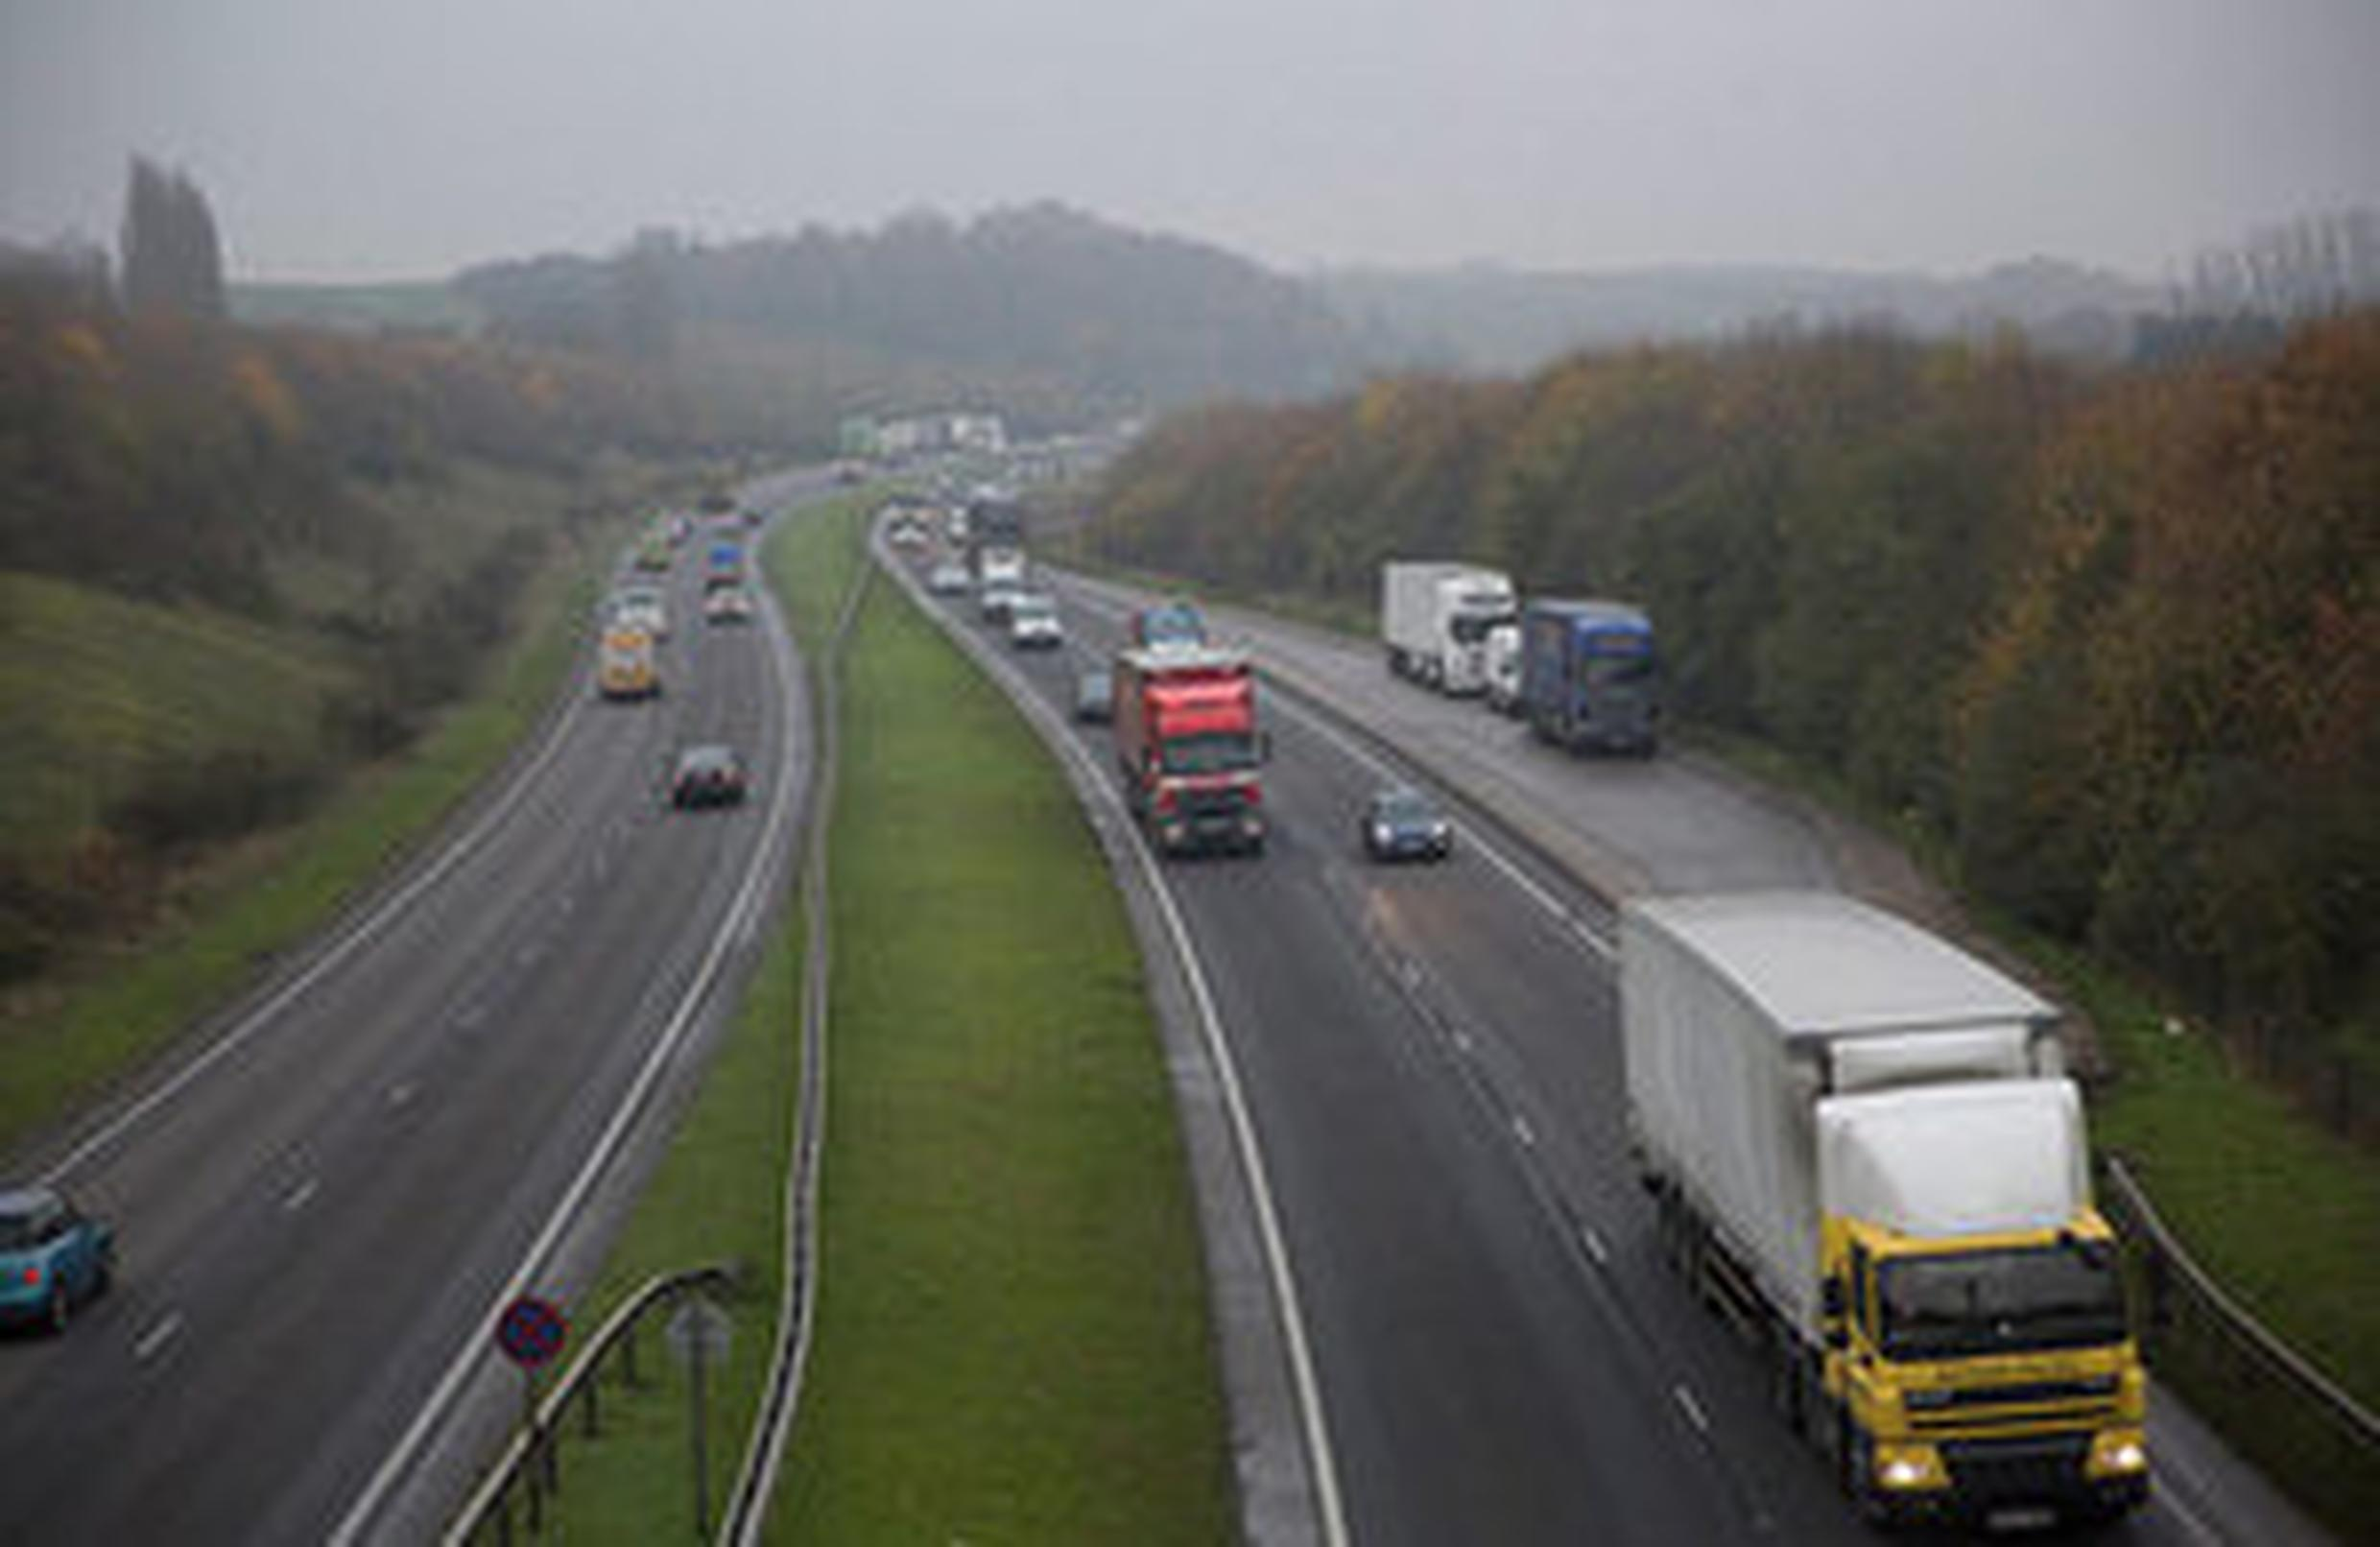 Government drops plan to build £250m lorry park in Kent